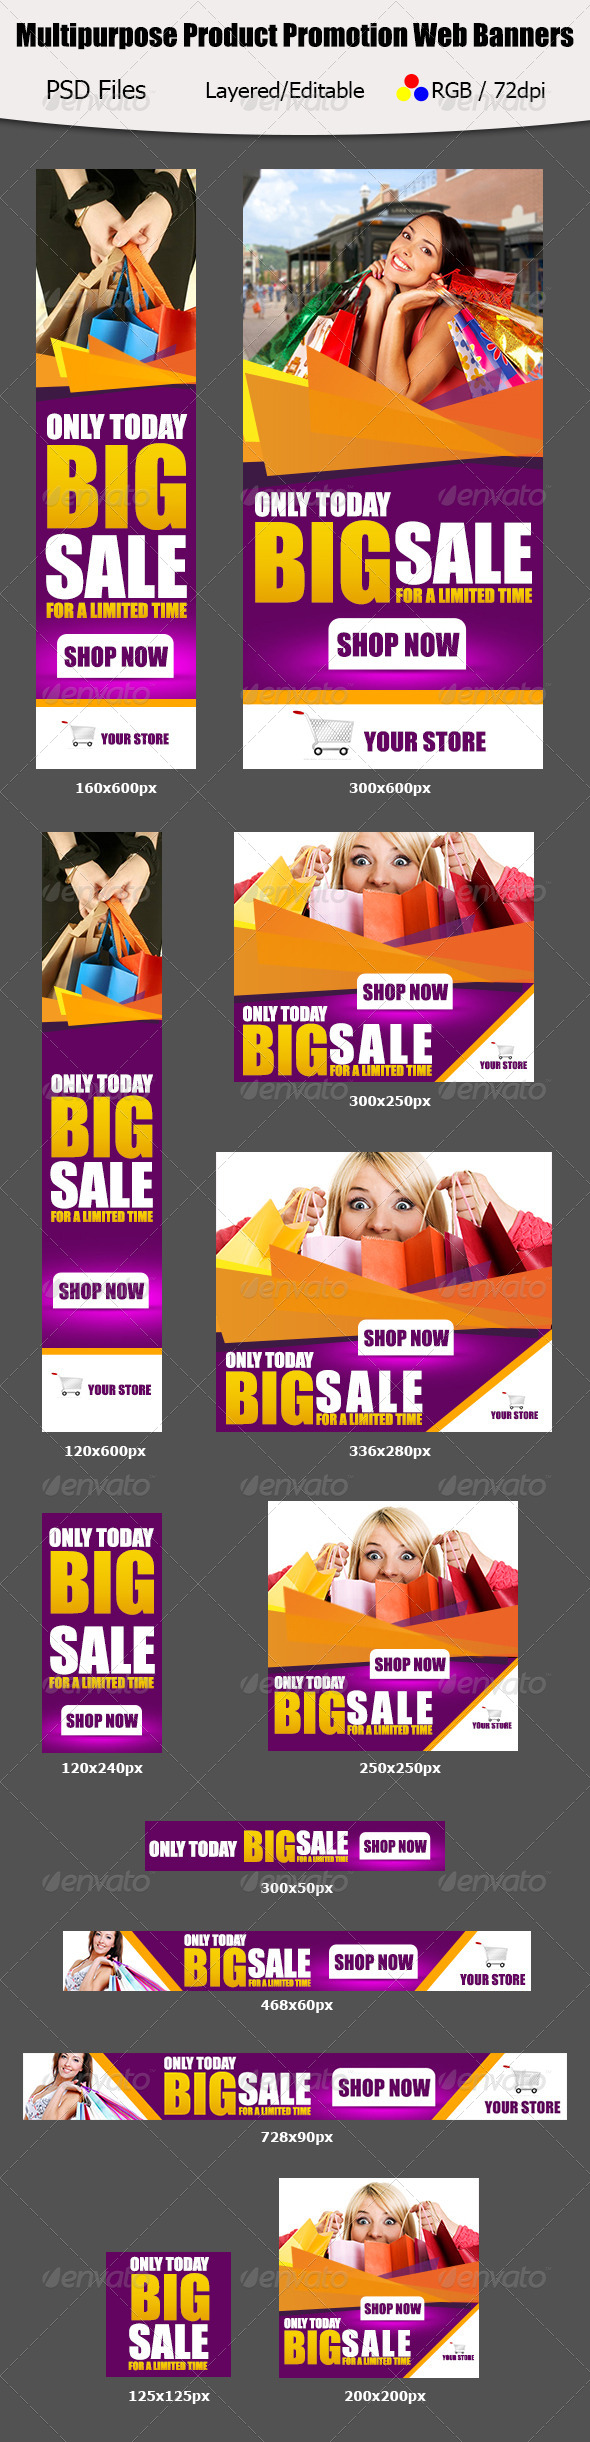 GraphicRiver Multipurpose Product Promotion Web Banners 5857373